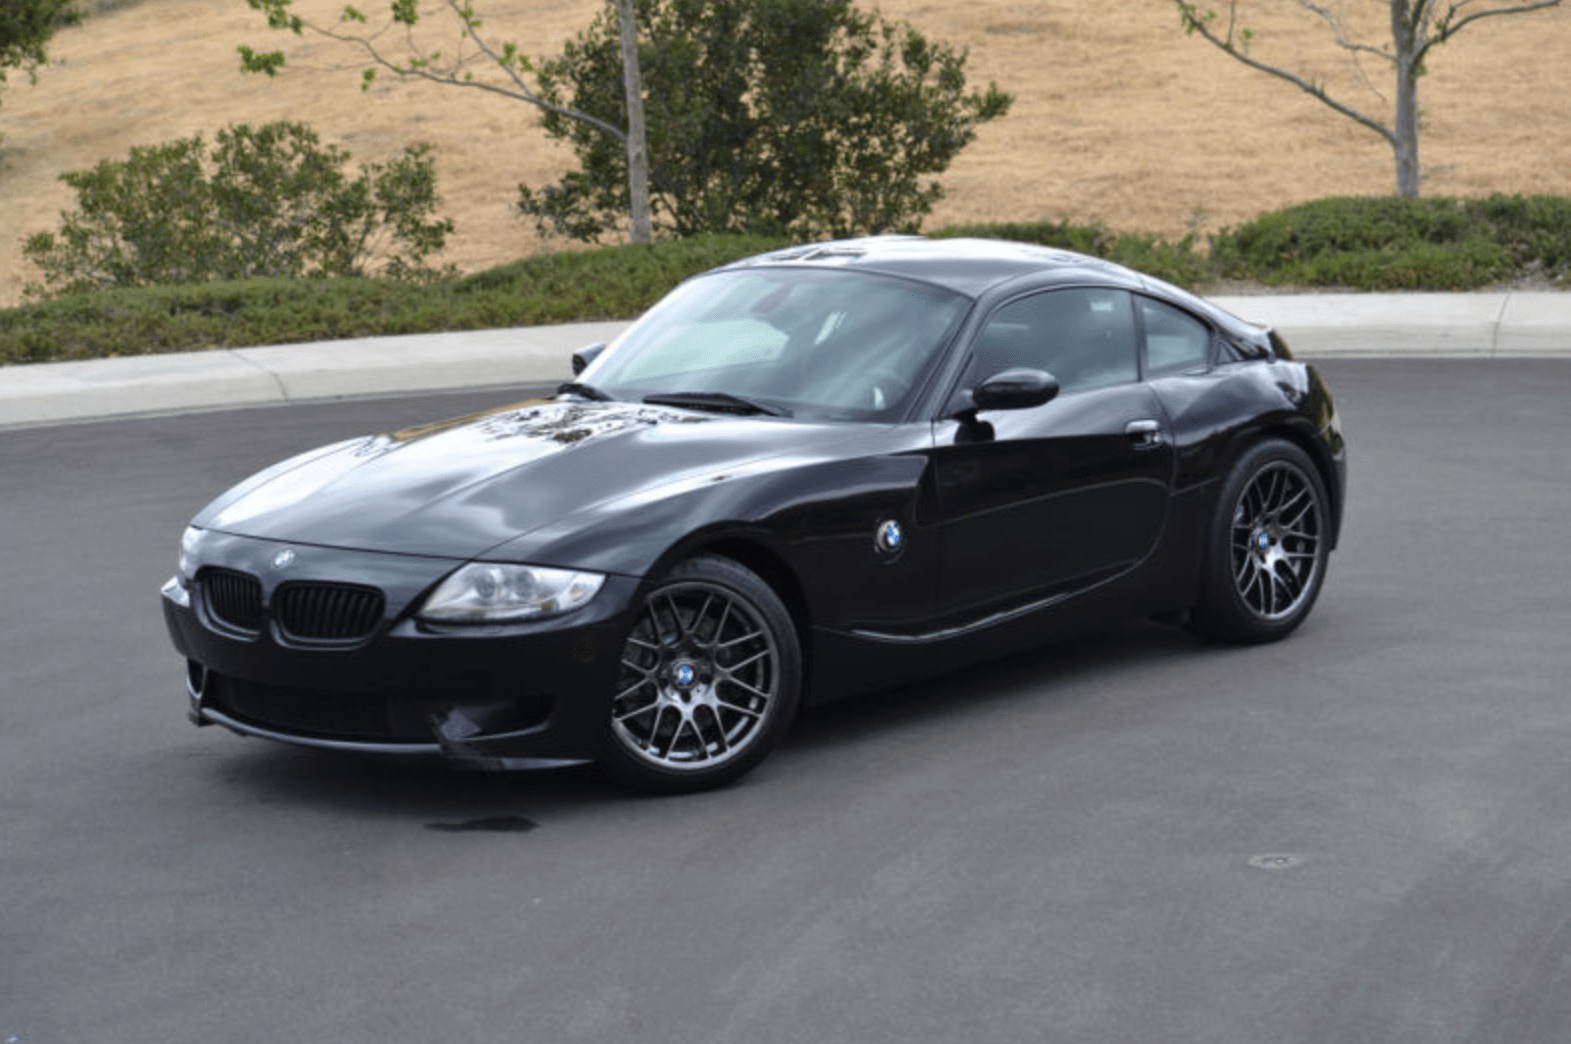 2007 z4 m coupe german cars for sale blog. Black Bedroom Furniture Sets. Home Design Ideas